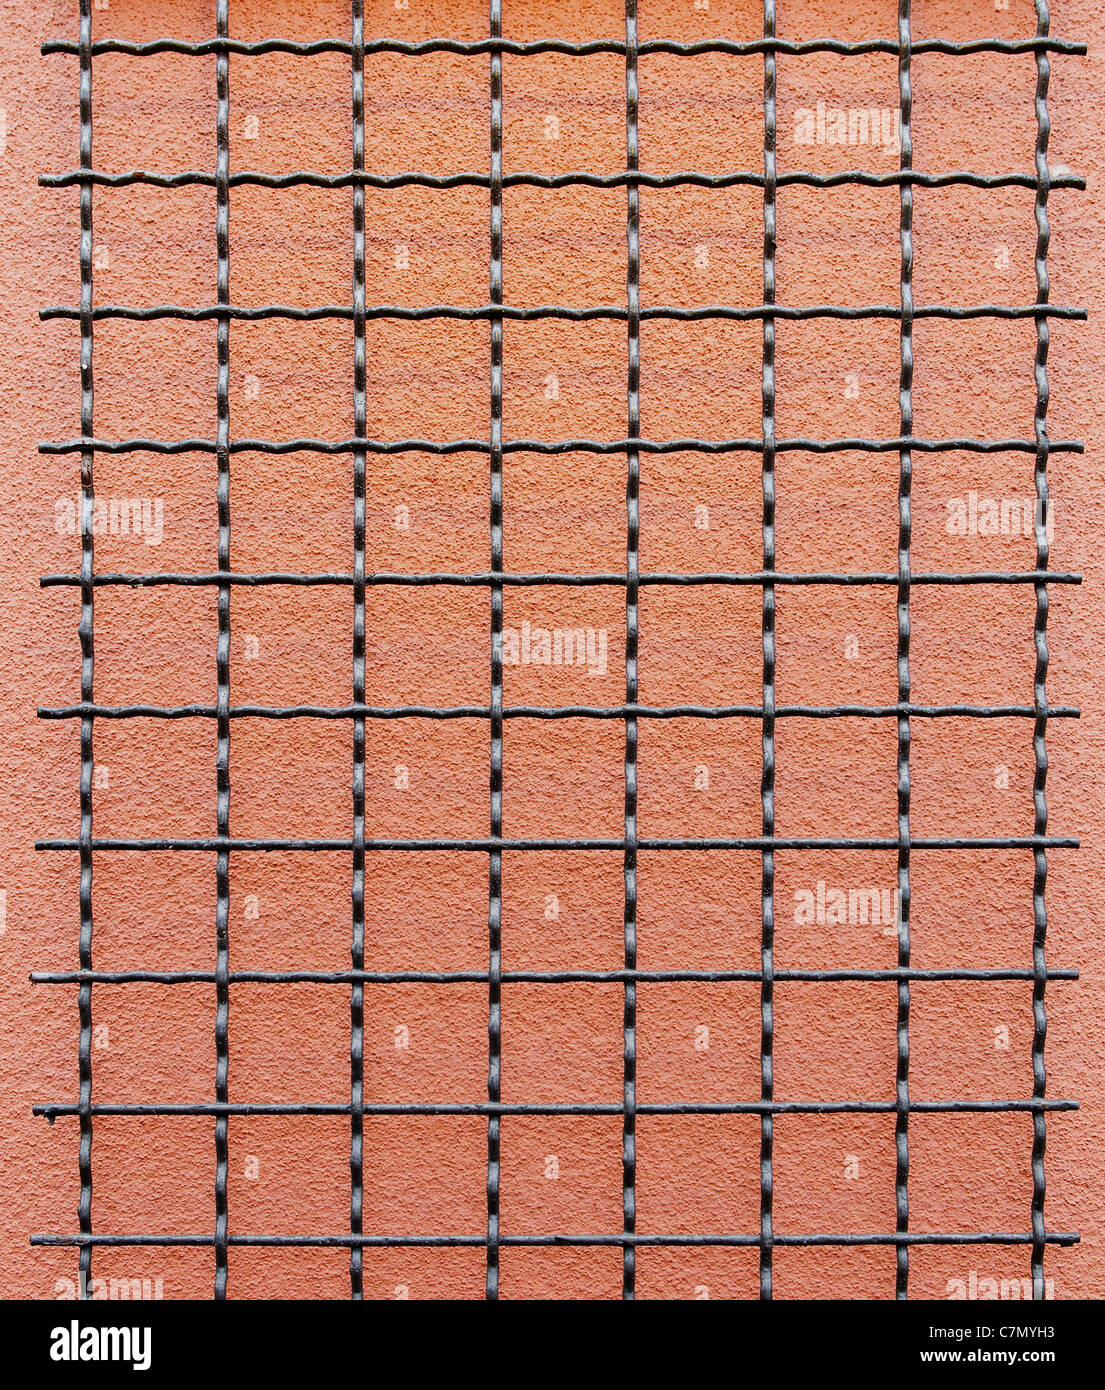 Black wire grid against a salmon stucco wall - Stock Image